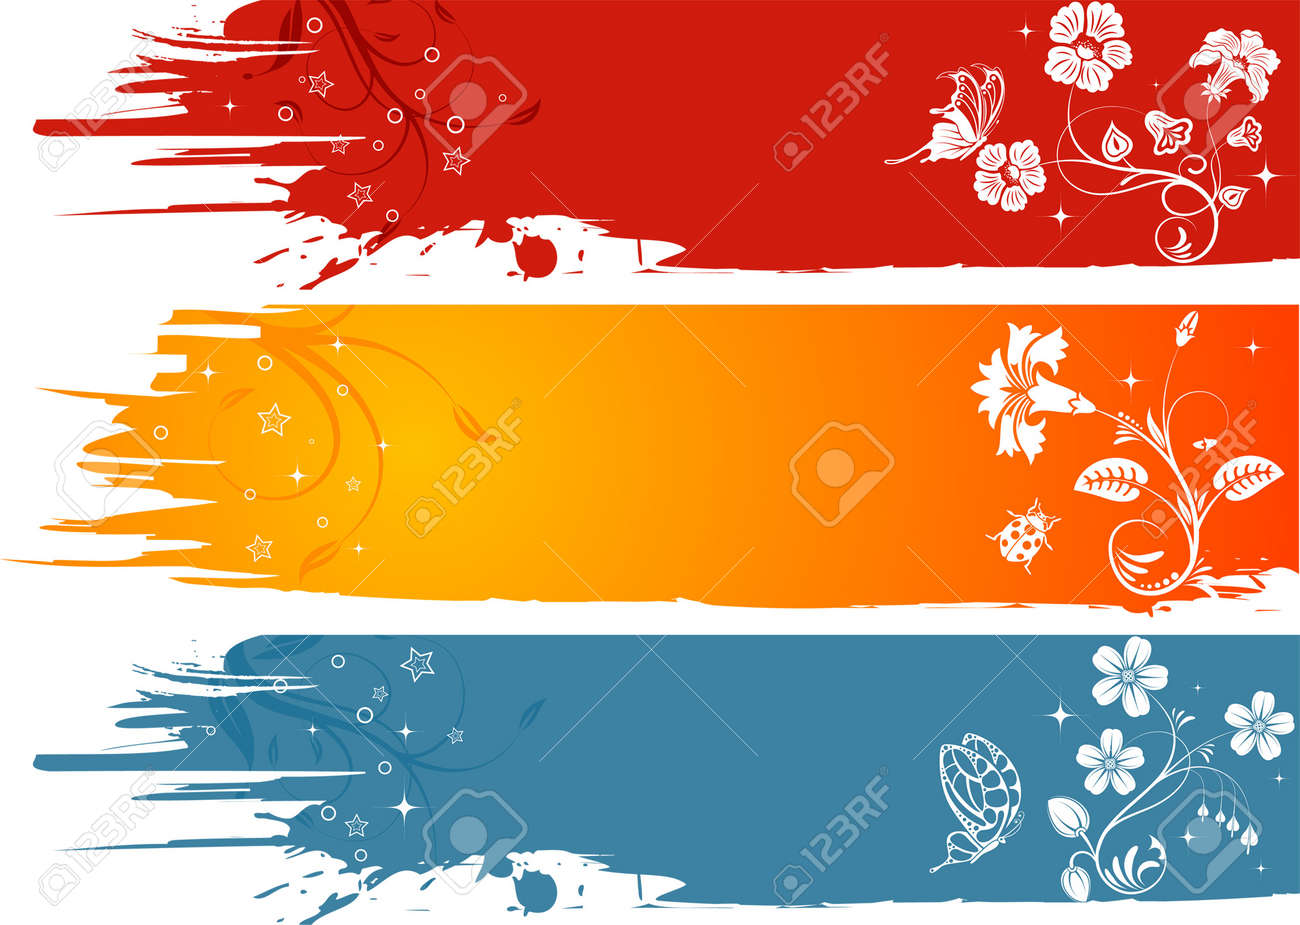 Three grunge flower background with butterfly and ladybug, element for design, vector illustration Stock Vector - 3125423